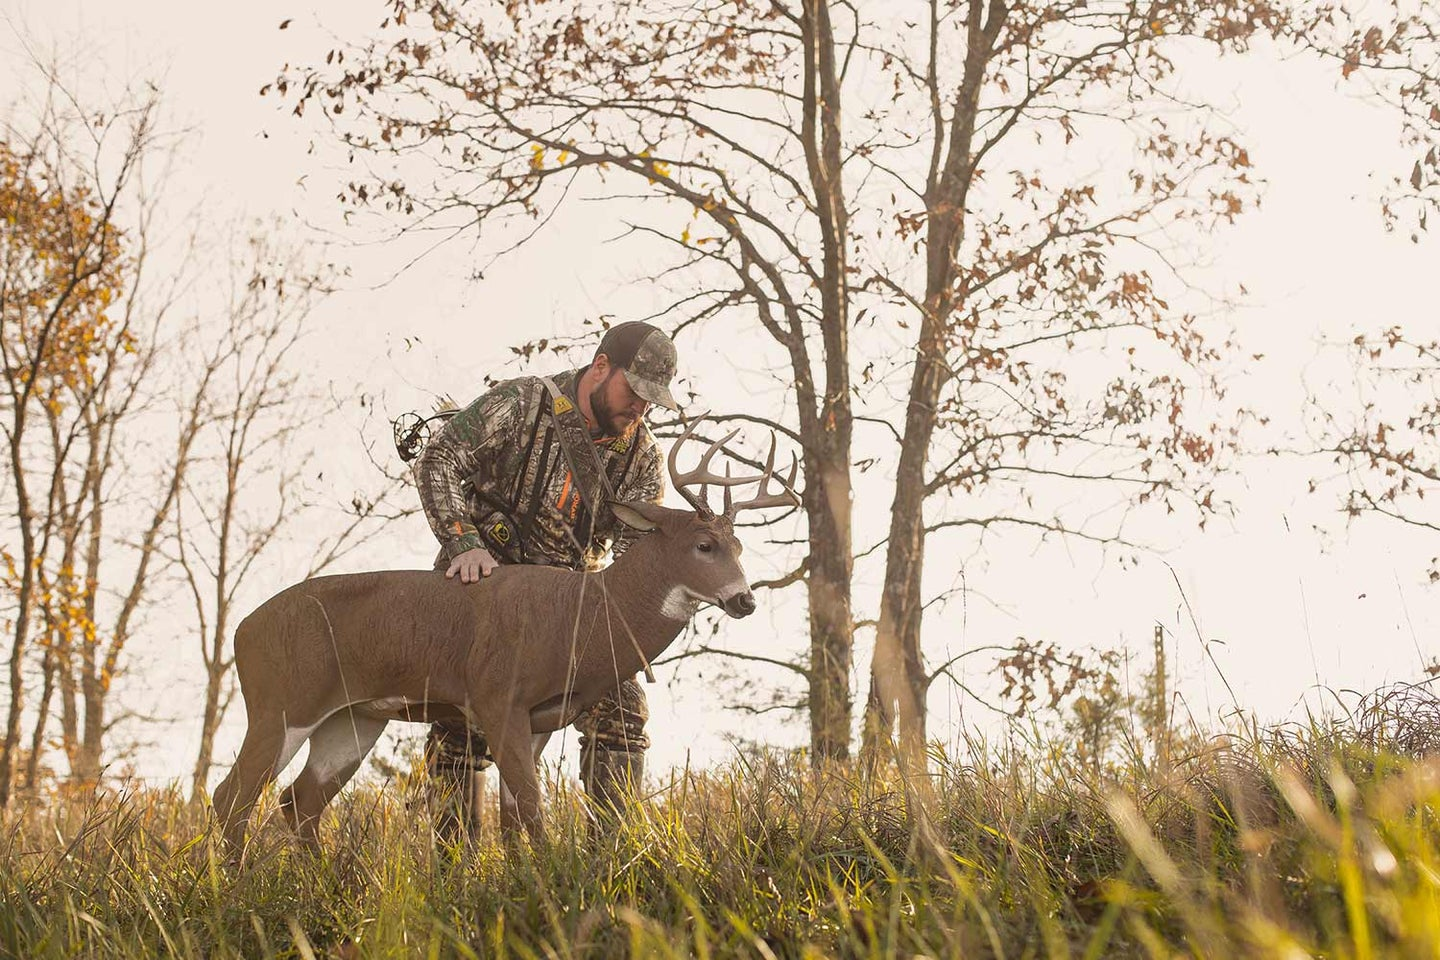 Michael Hunsucker sets up a Dave Smith deer decoy on private land in Iowa.